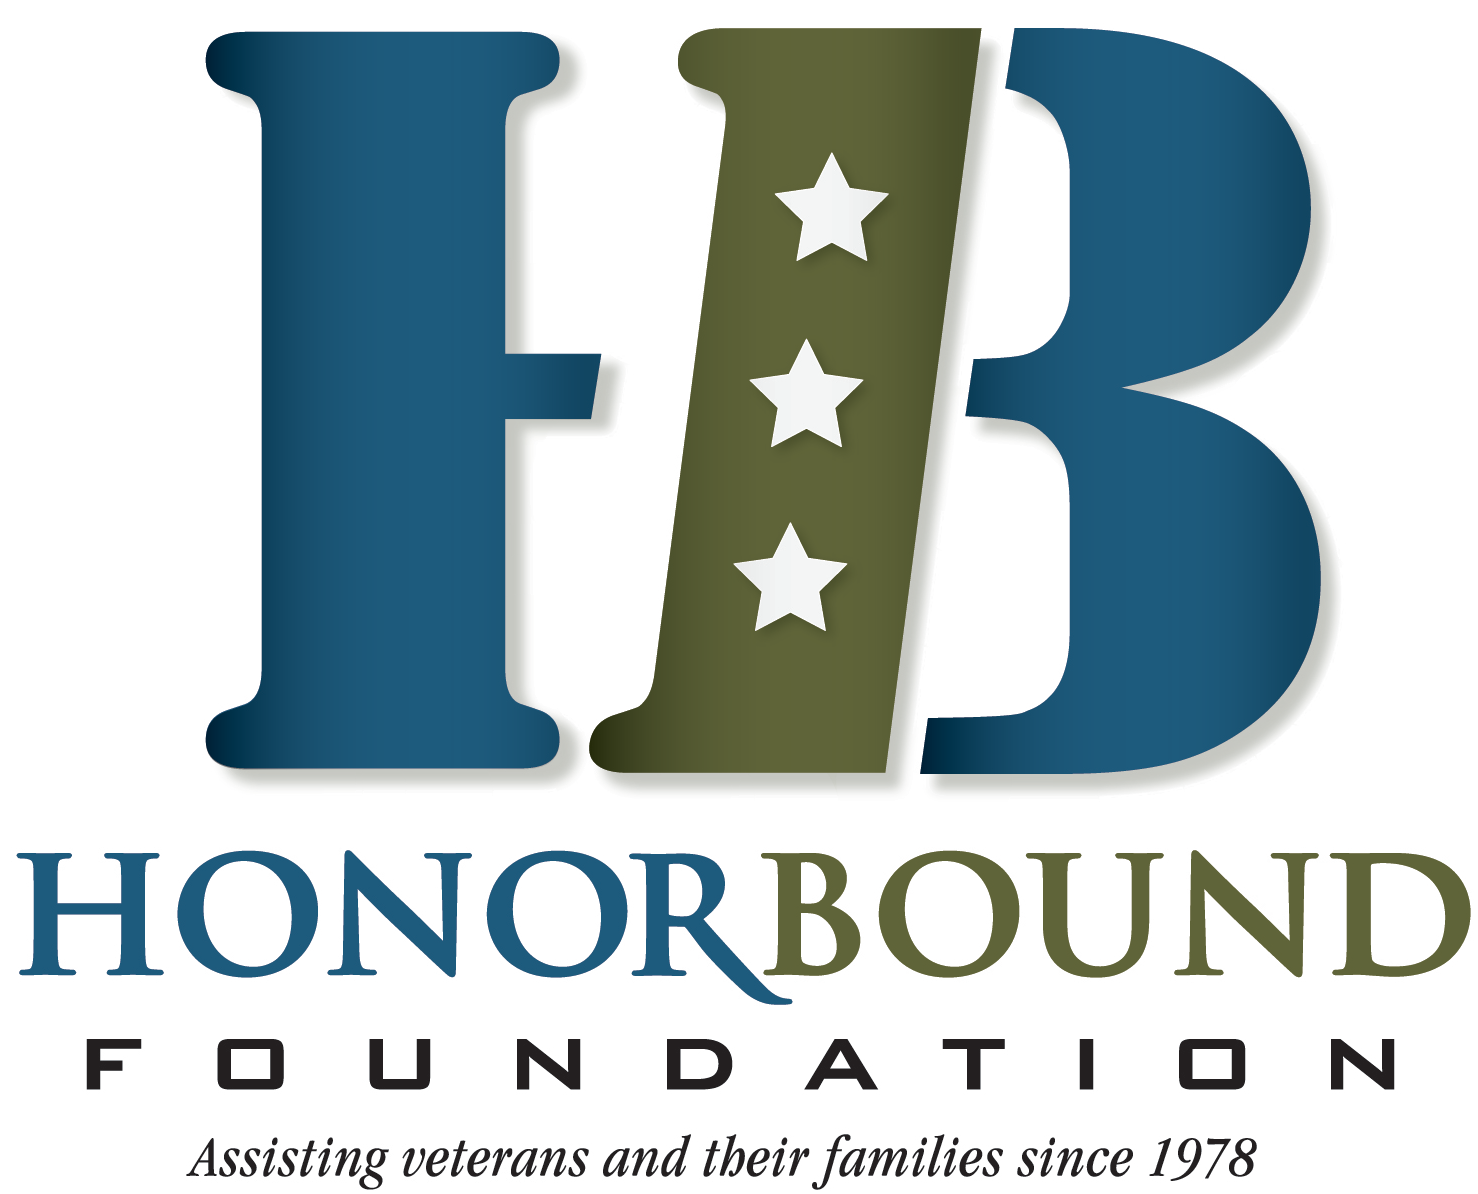 Louisiana Car Donations - HonorBound Foundation - DonatecarUSA.com